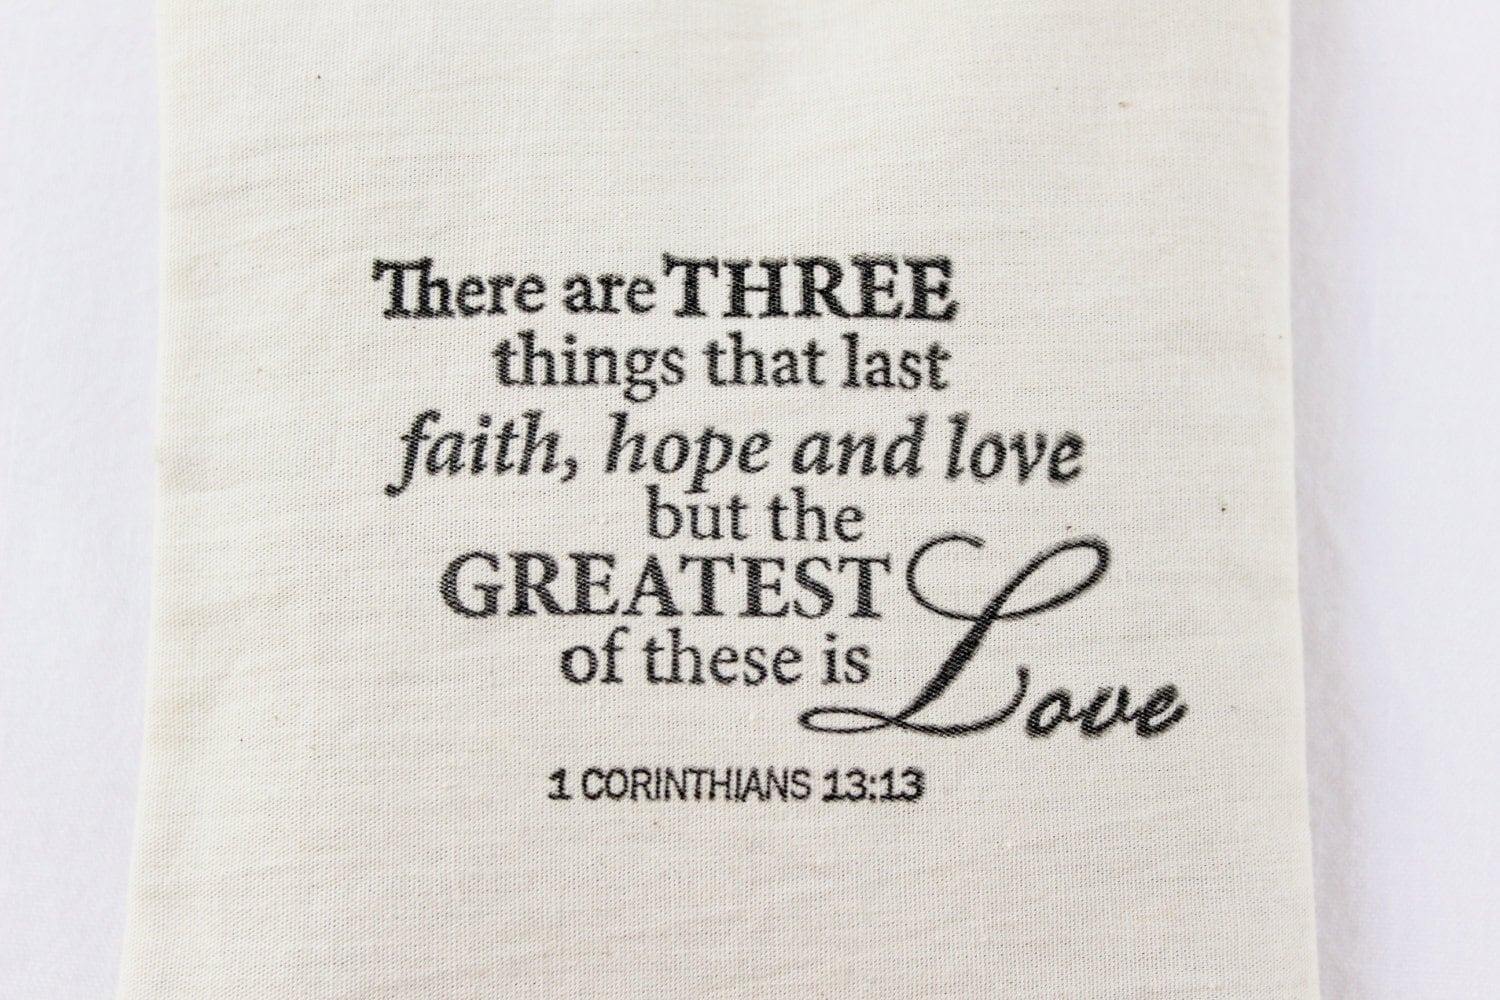 Quotes About Love In The Bible Faith Hope Love Lavender Sachet 1 Corinthians 13 Bible Verse